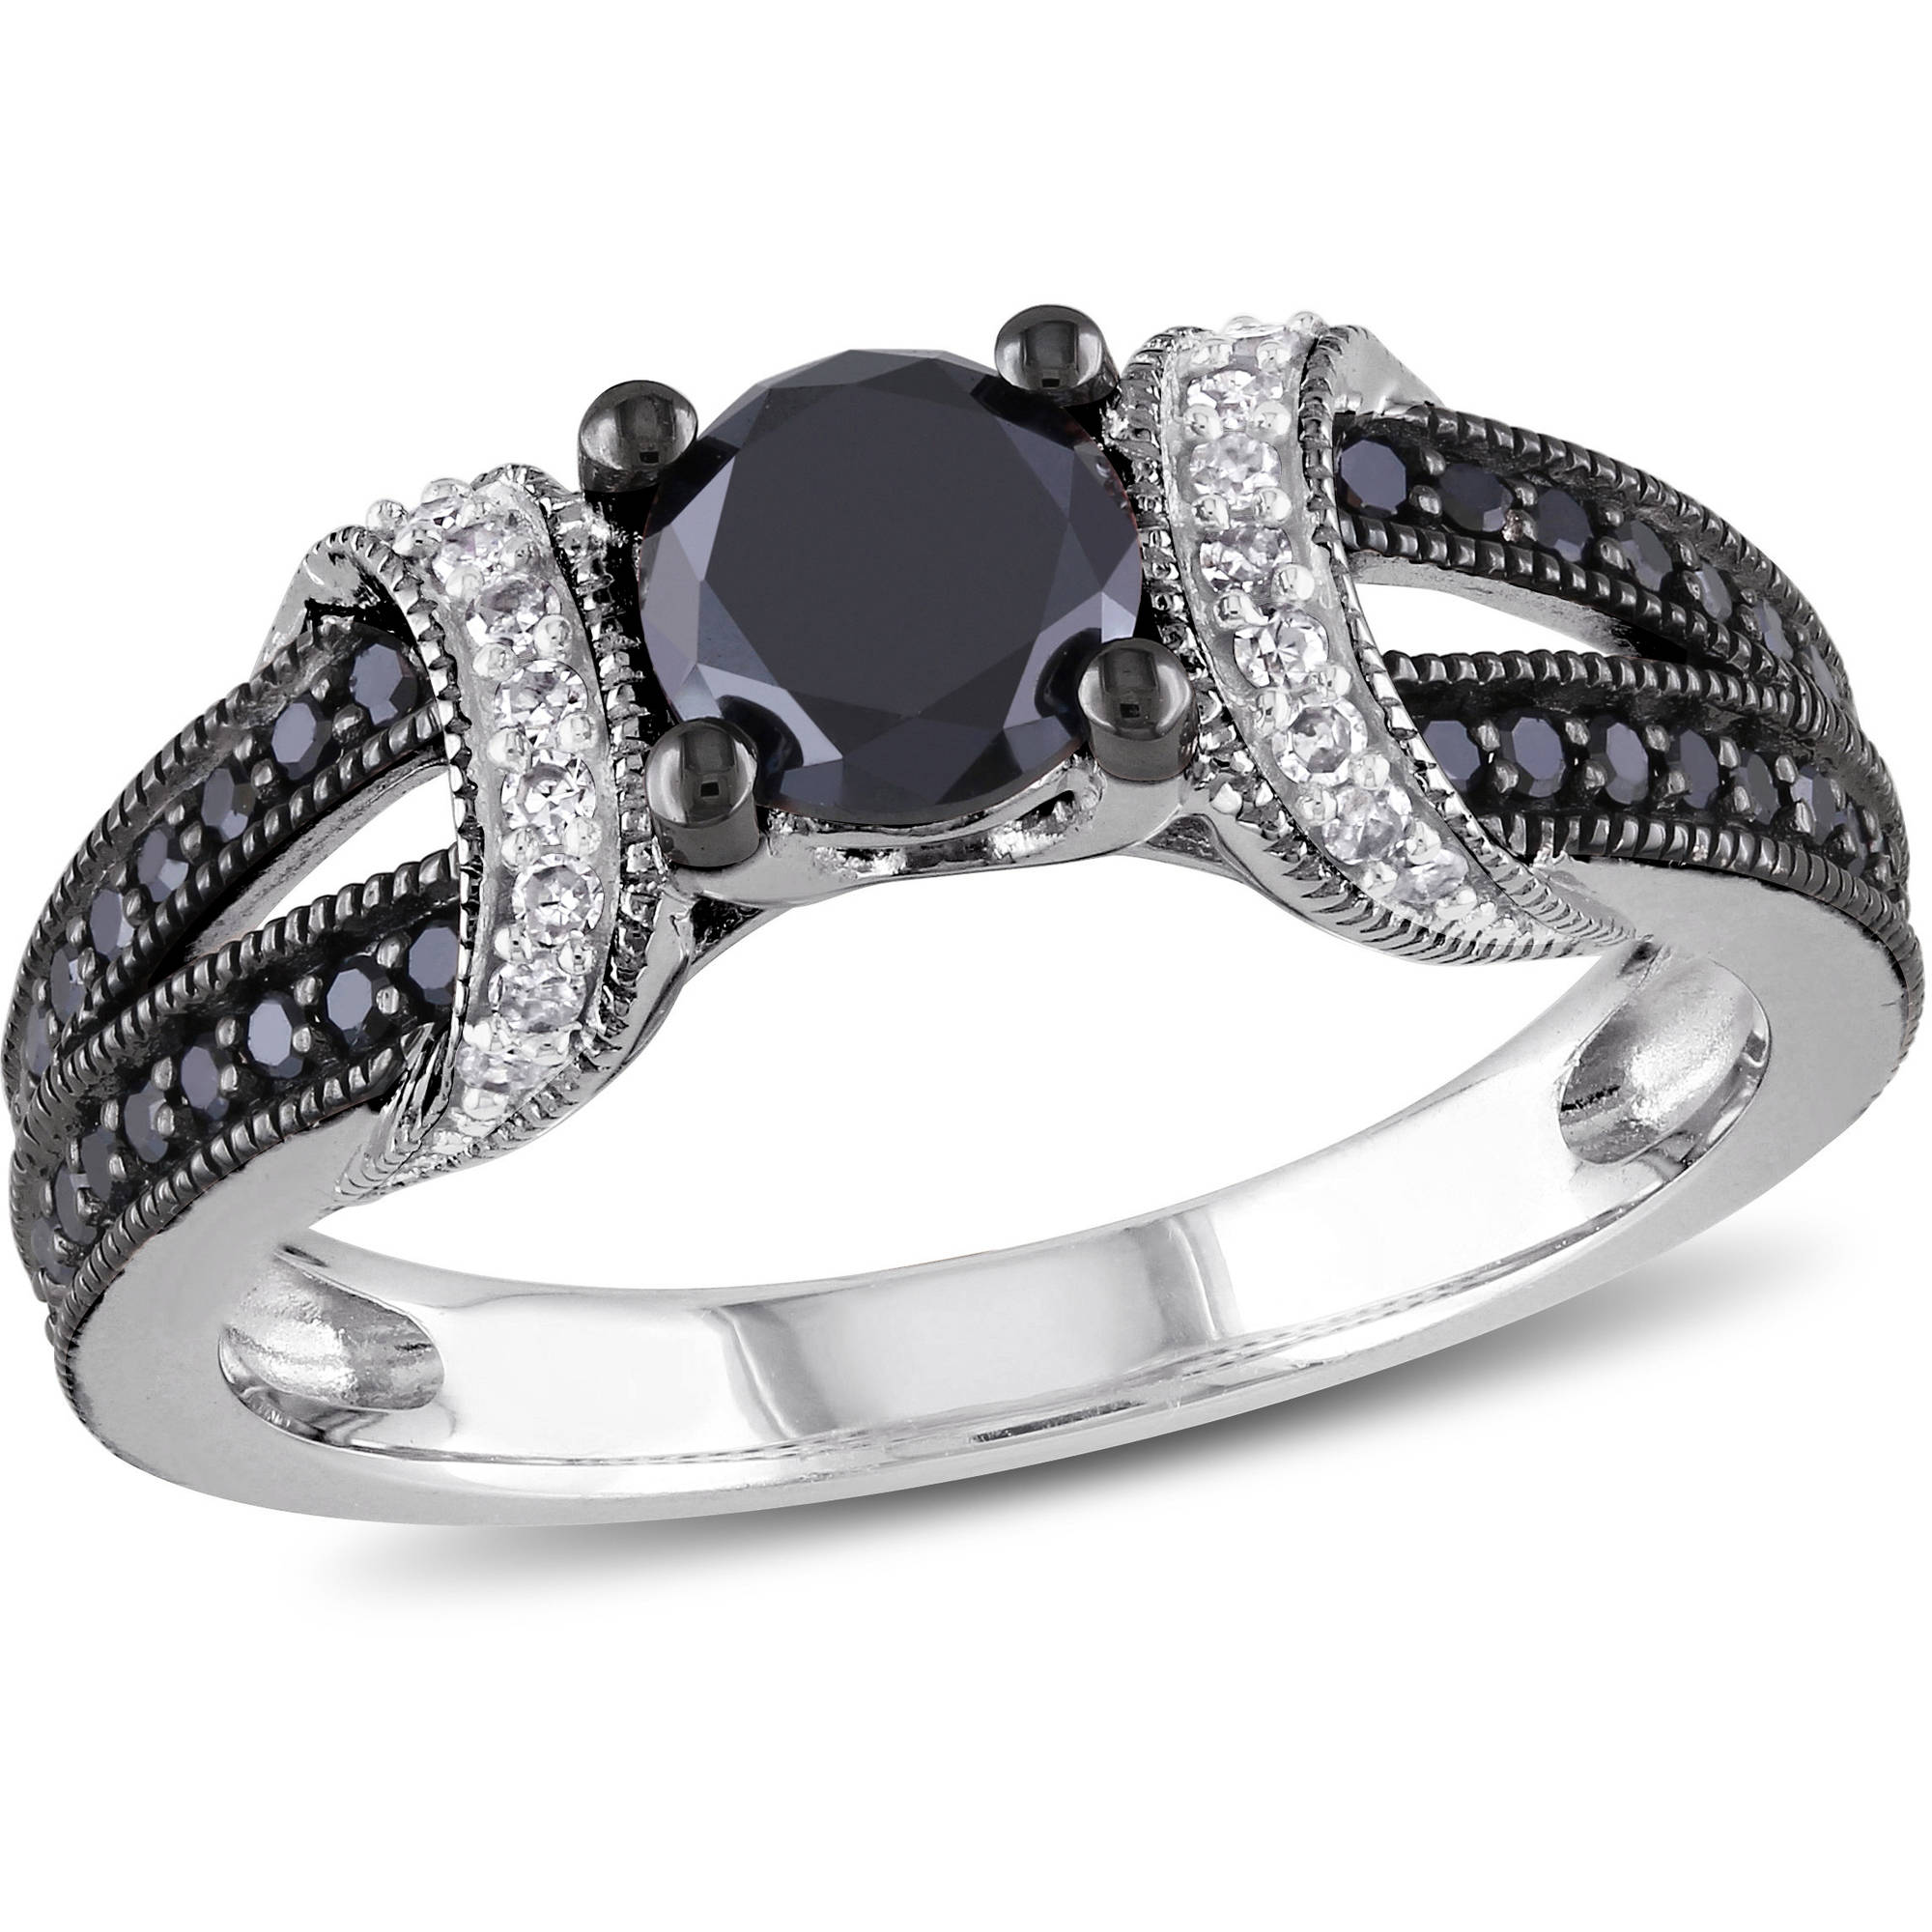 rings walmartcom - Wedding Rings From Walmart